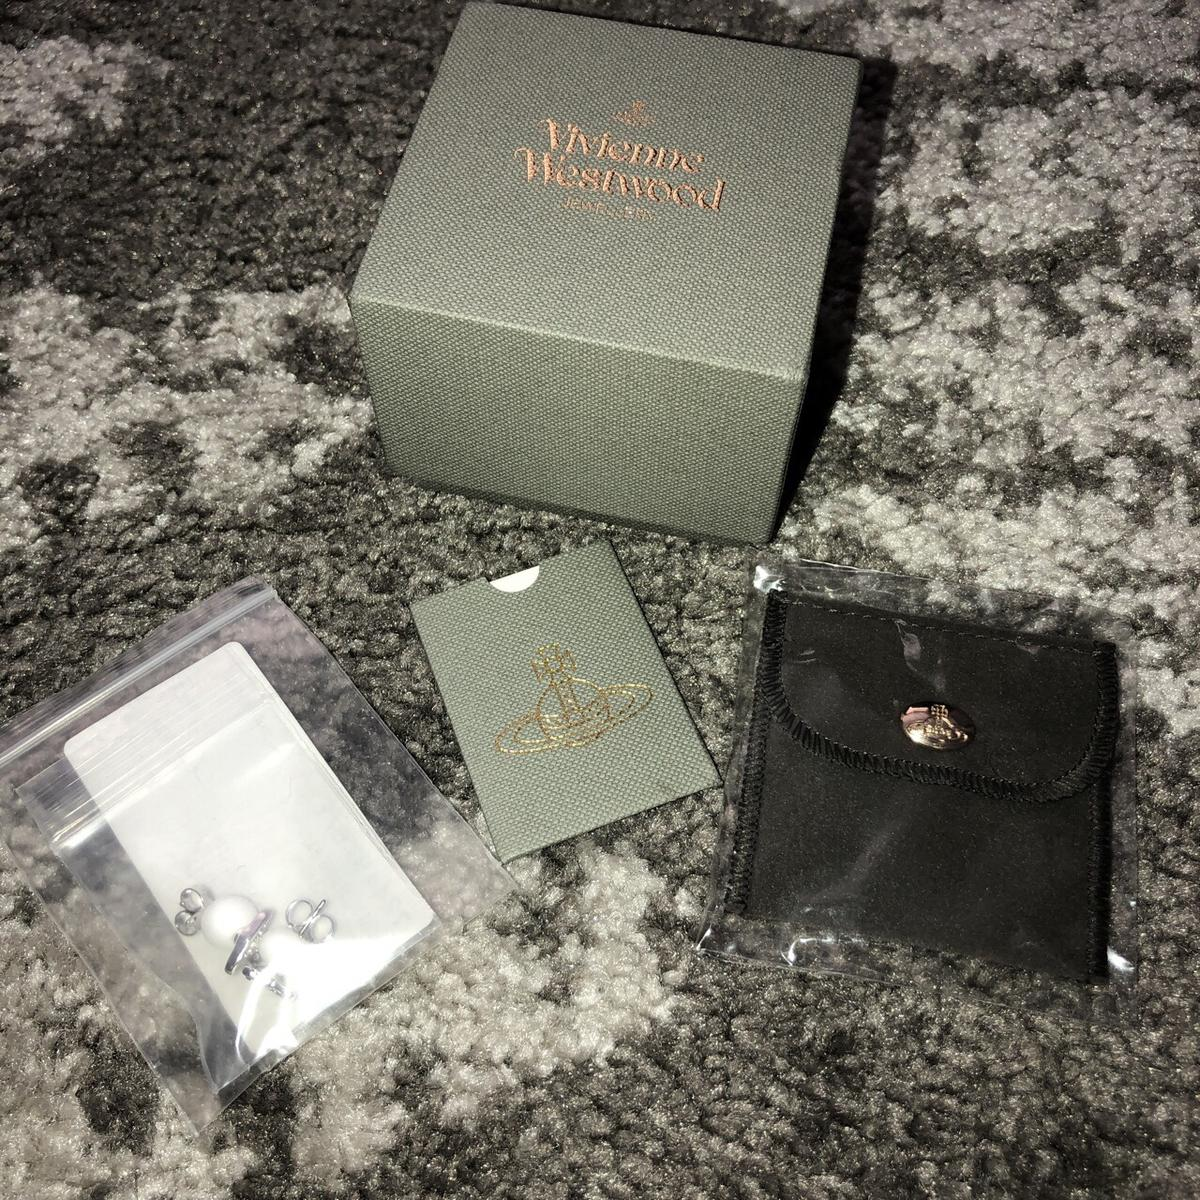 7e67ff55bf Vivienne Westwood earrings in Walsall for £60.00 for sale - Shpock